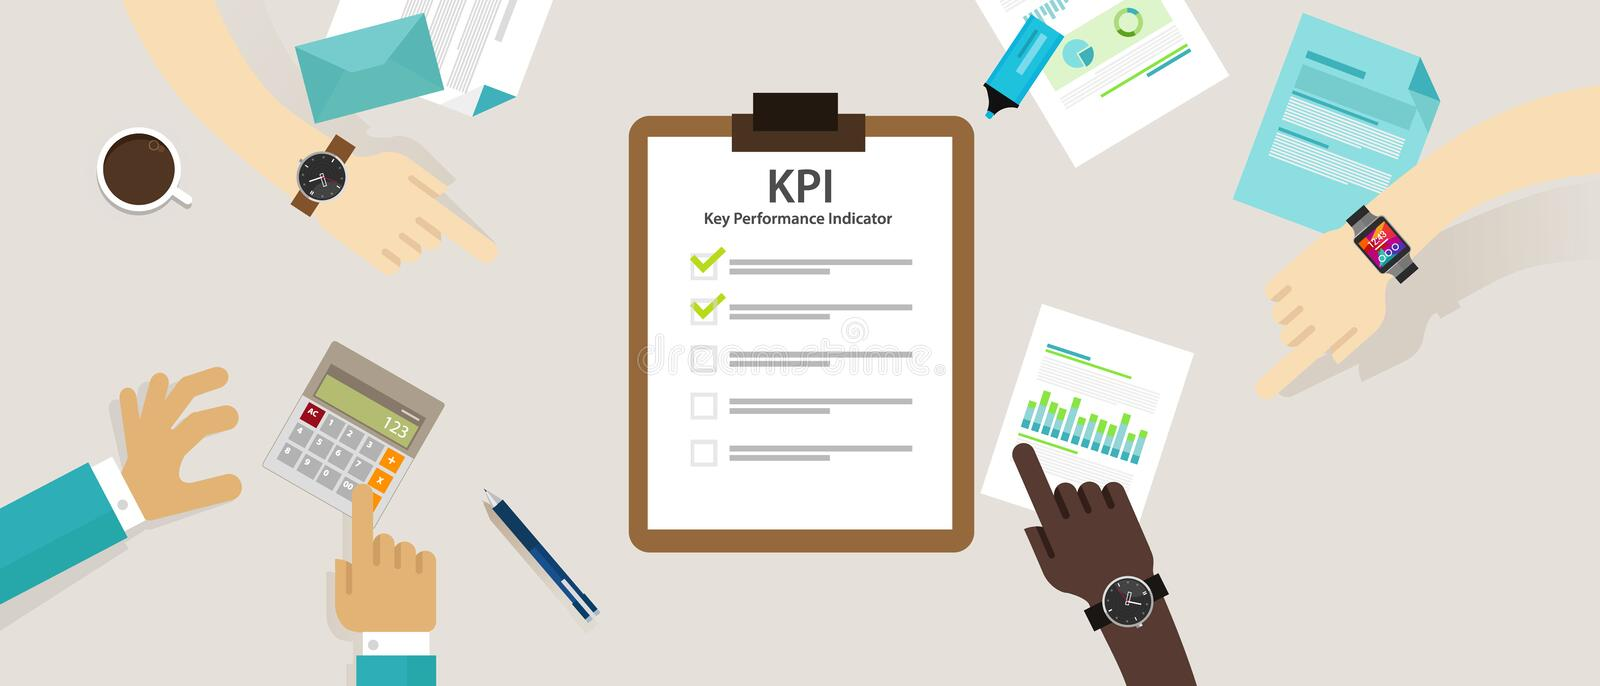 Kpi key performance indicator business concept evaluation strategy plan measure hr royalty free illustration